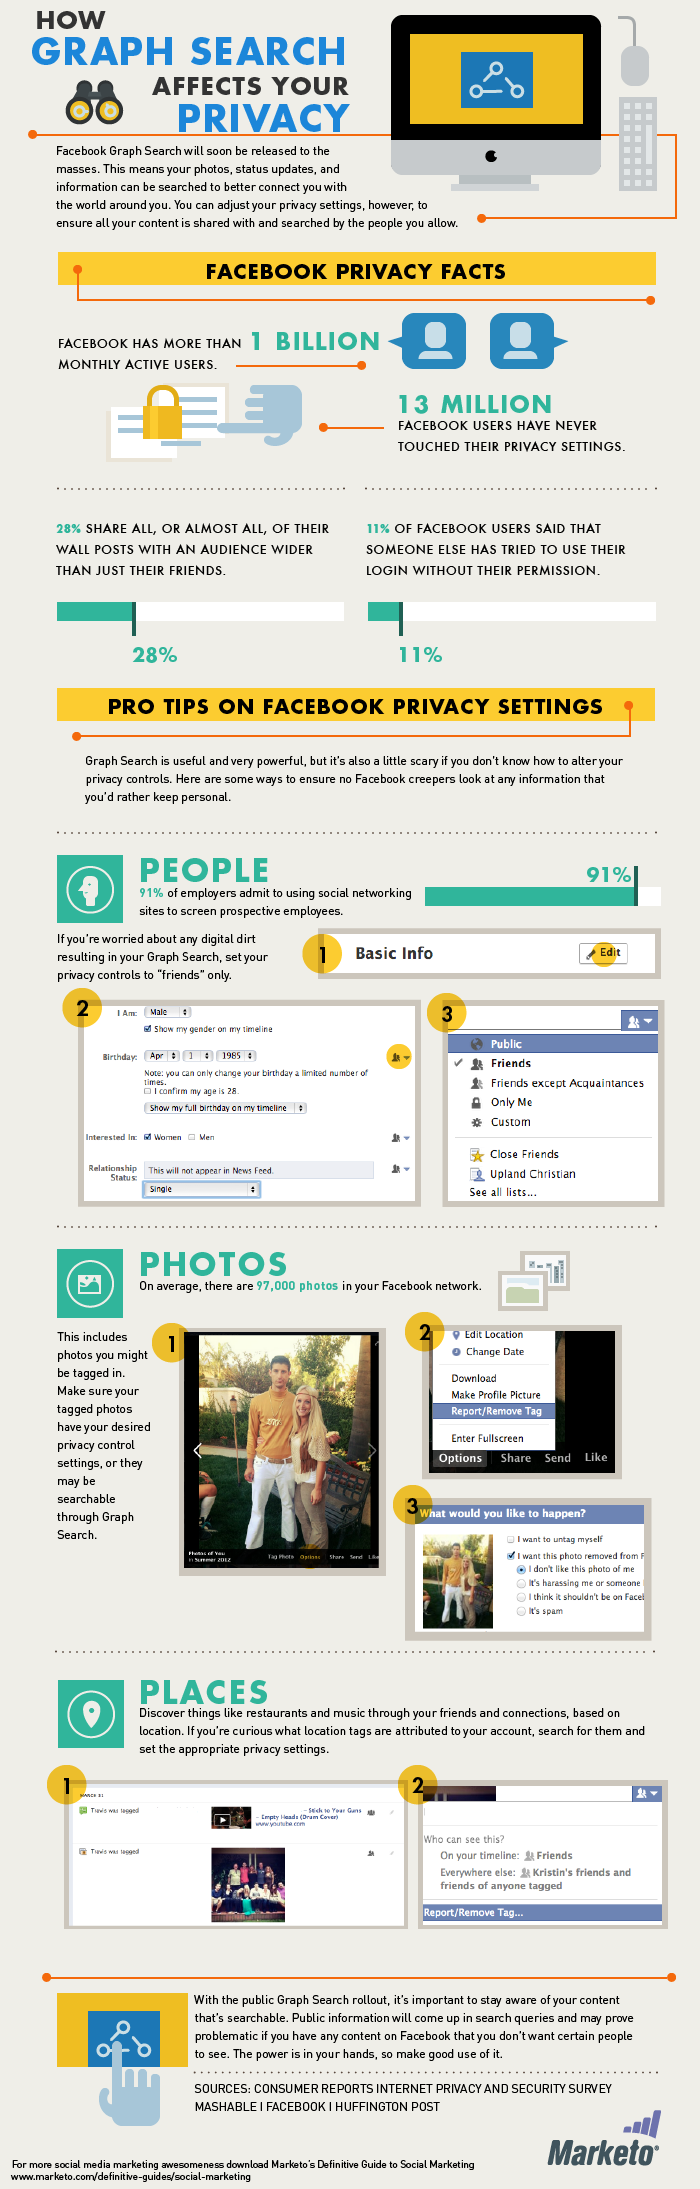 2013-05-01-HowGraphSearchAffectsYourPrivacy.png